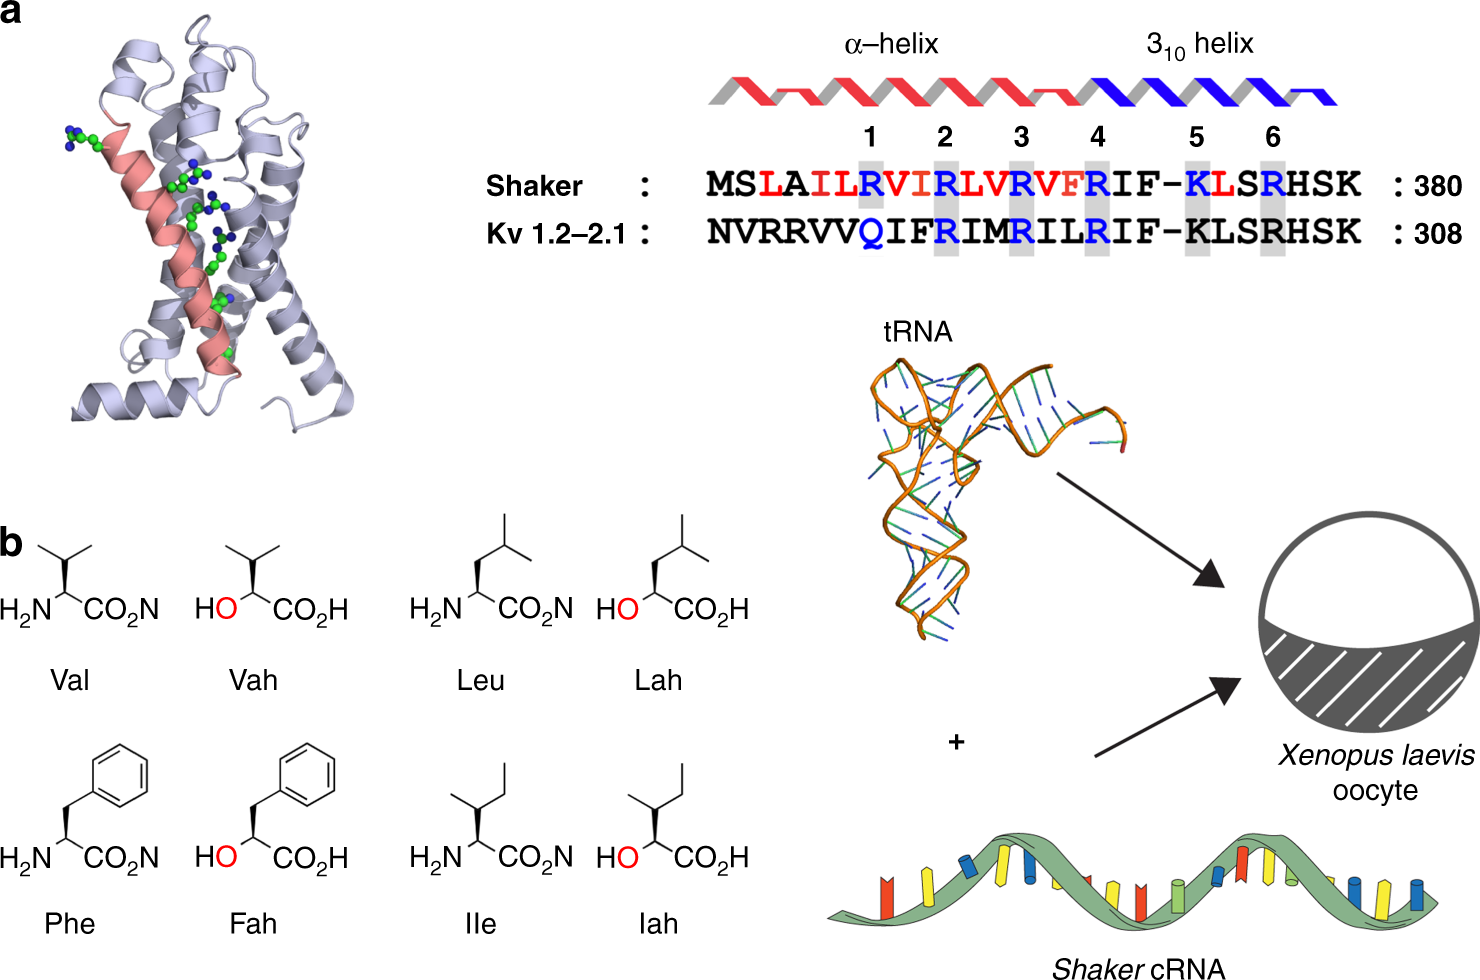 Main-chain mutagenesis reveals intrahelical coupling in an ion